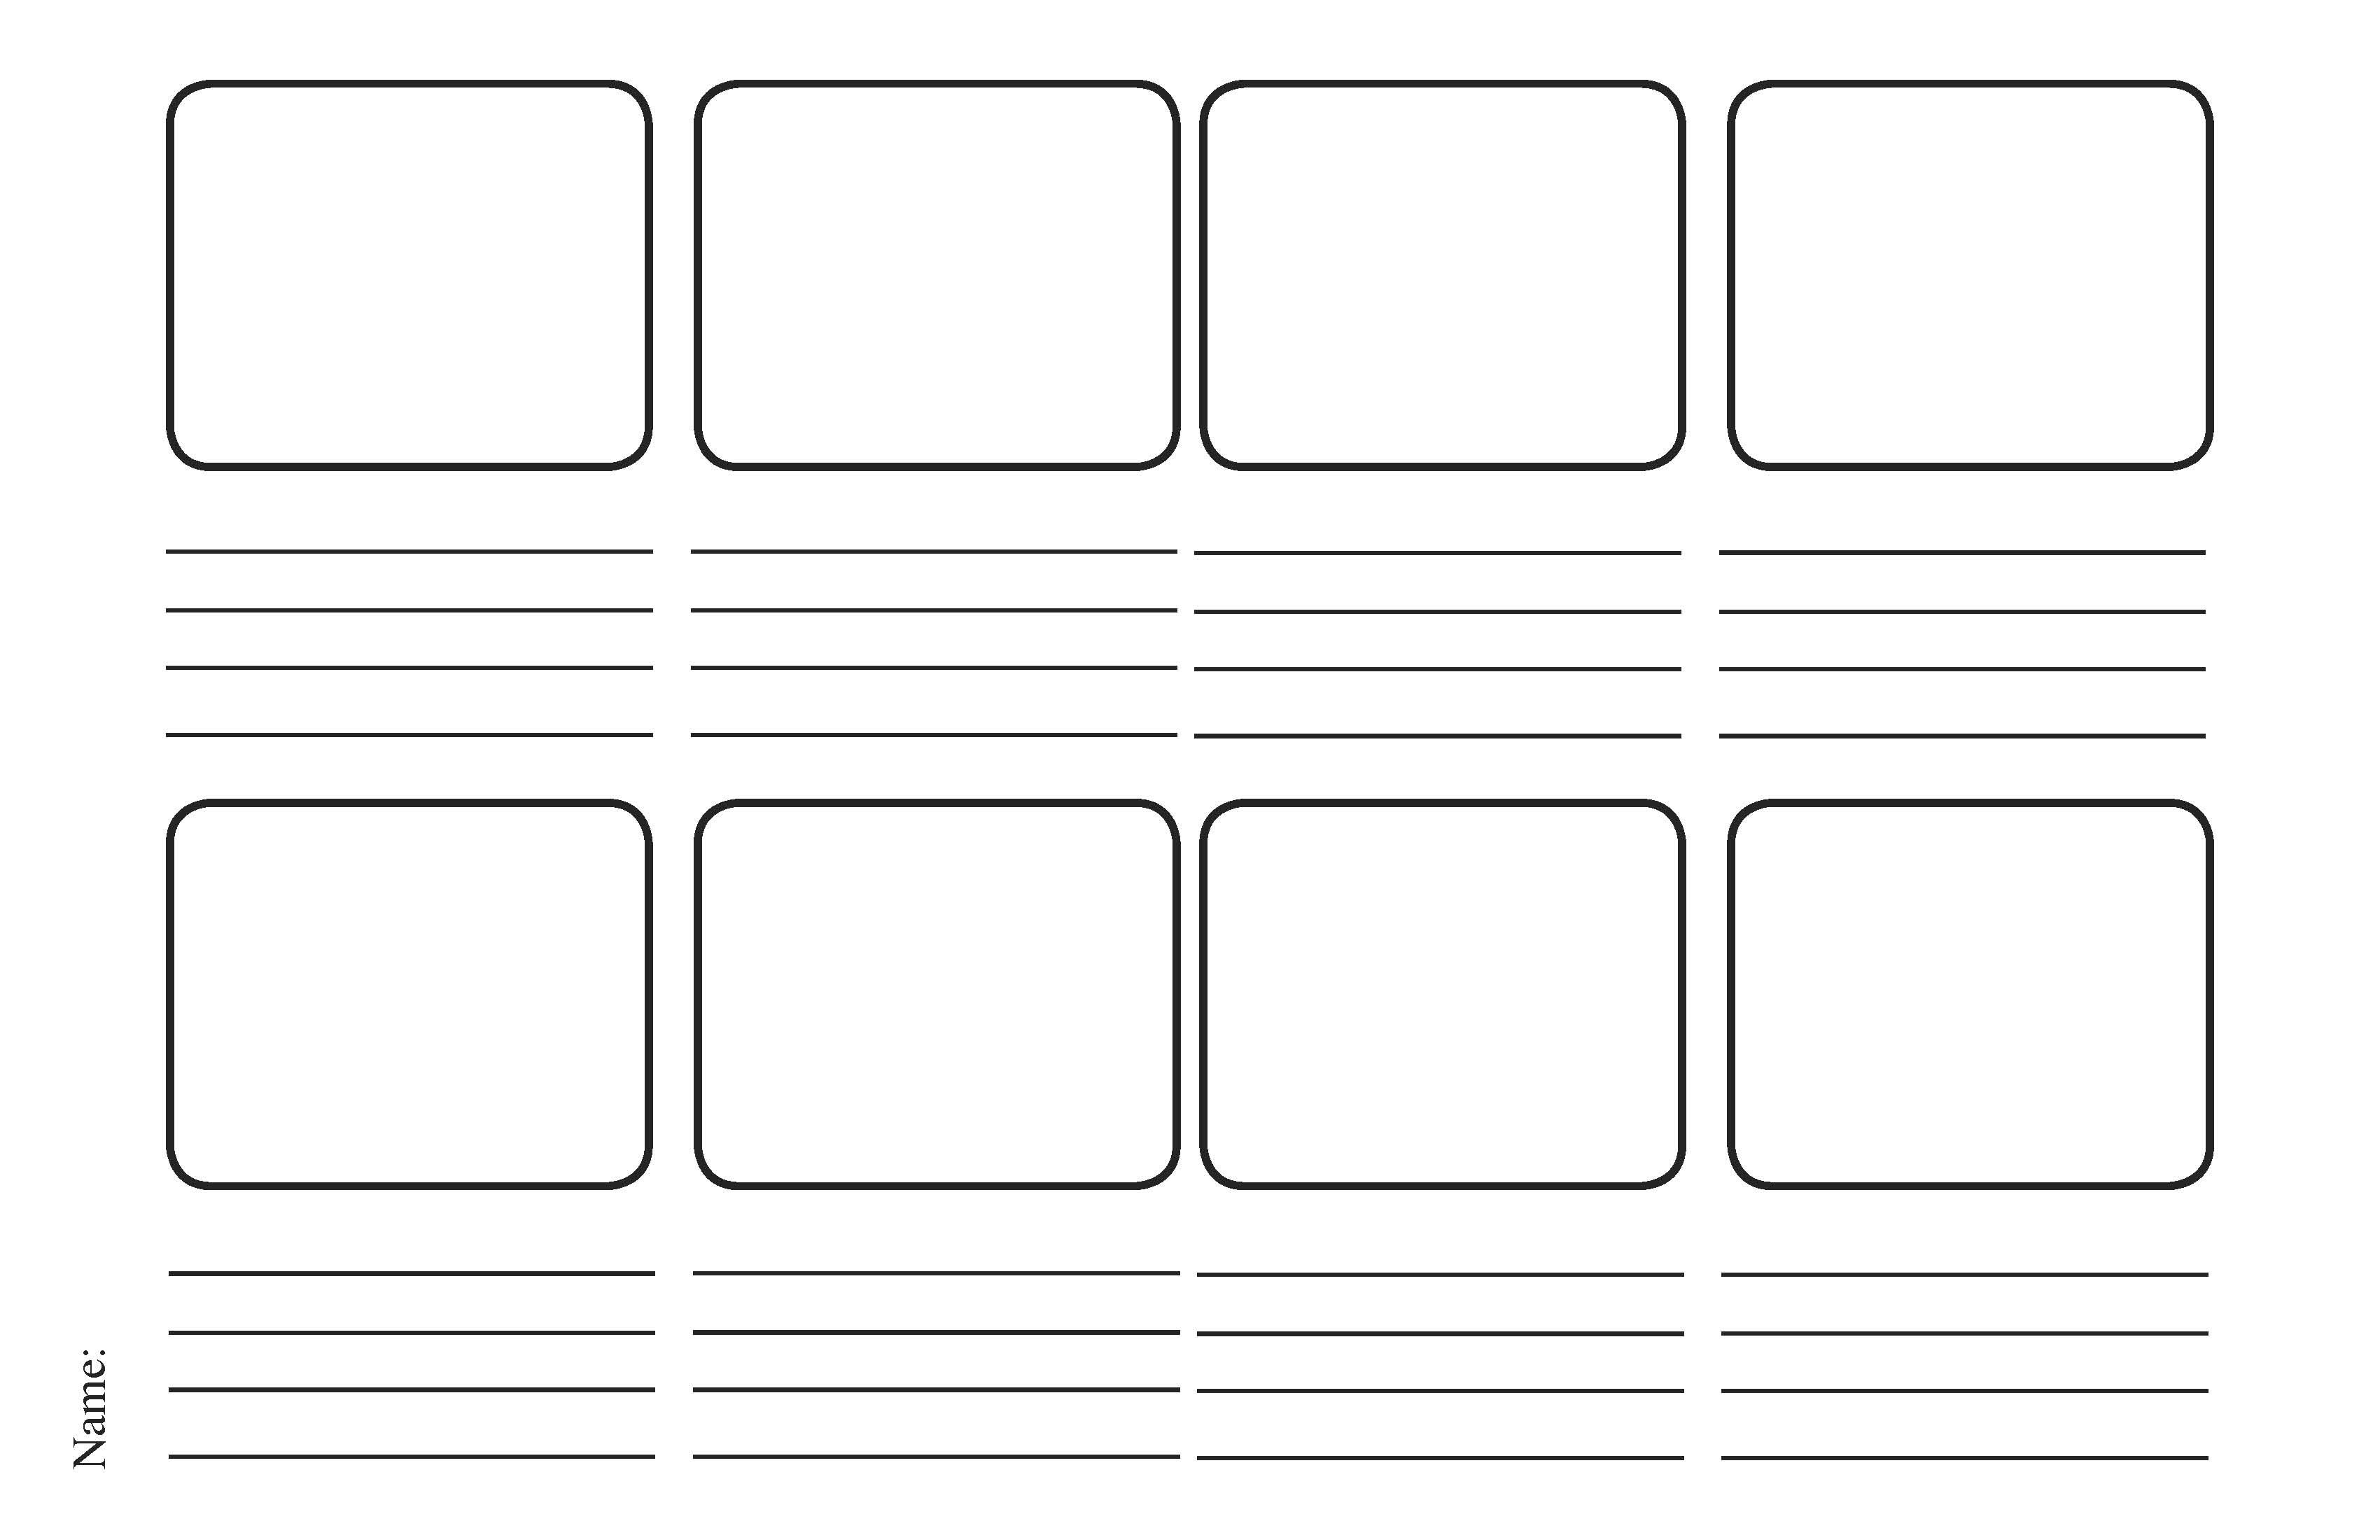 instructional design storyboard examples